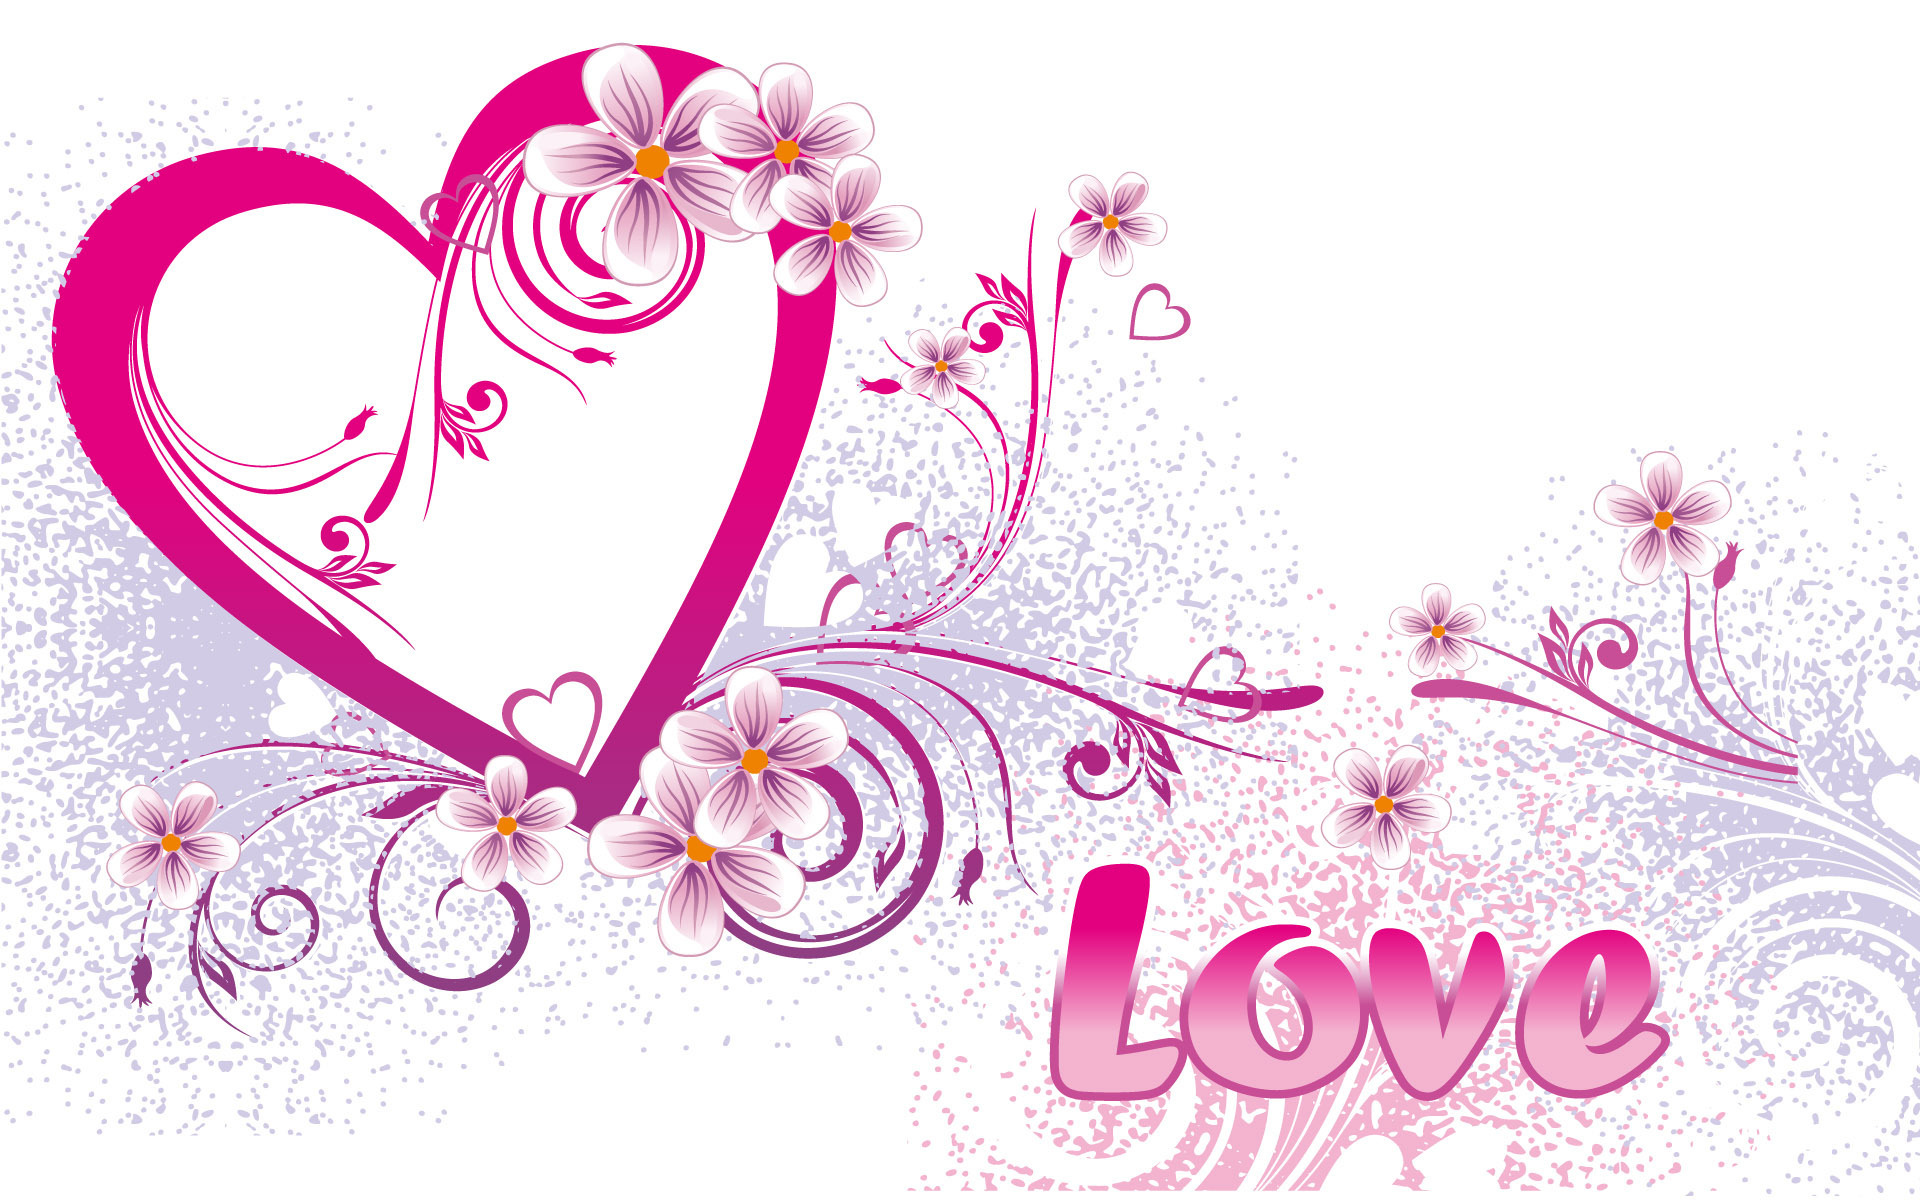 Love wallpaper - Love Wallpaper (4187632) - Fanpop